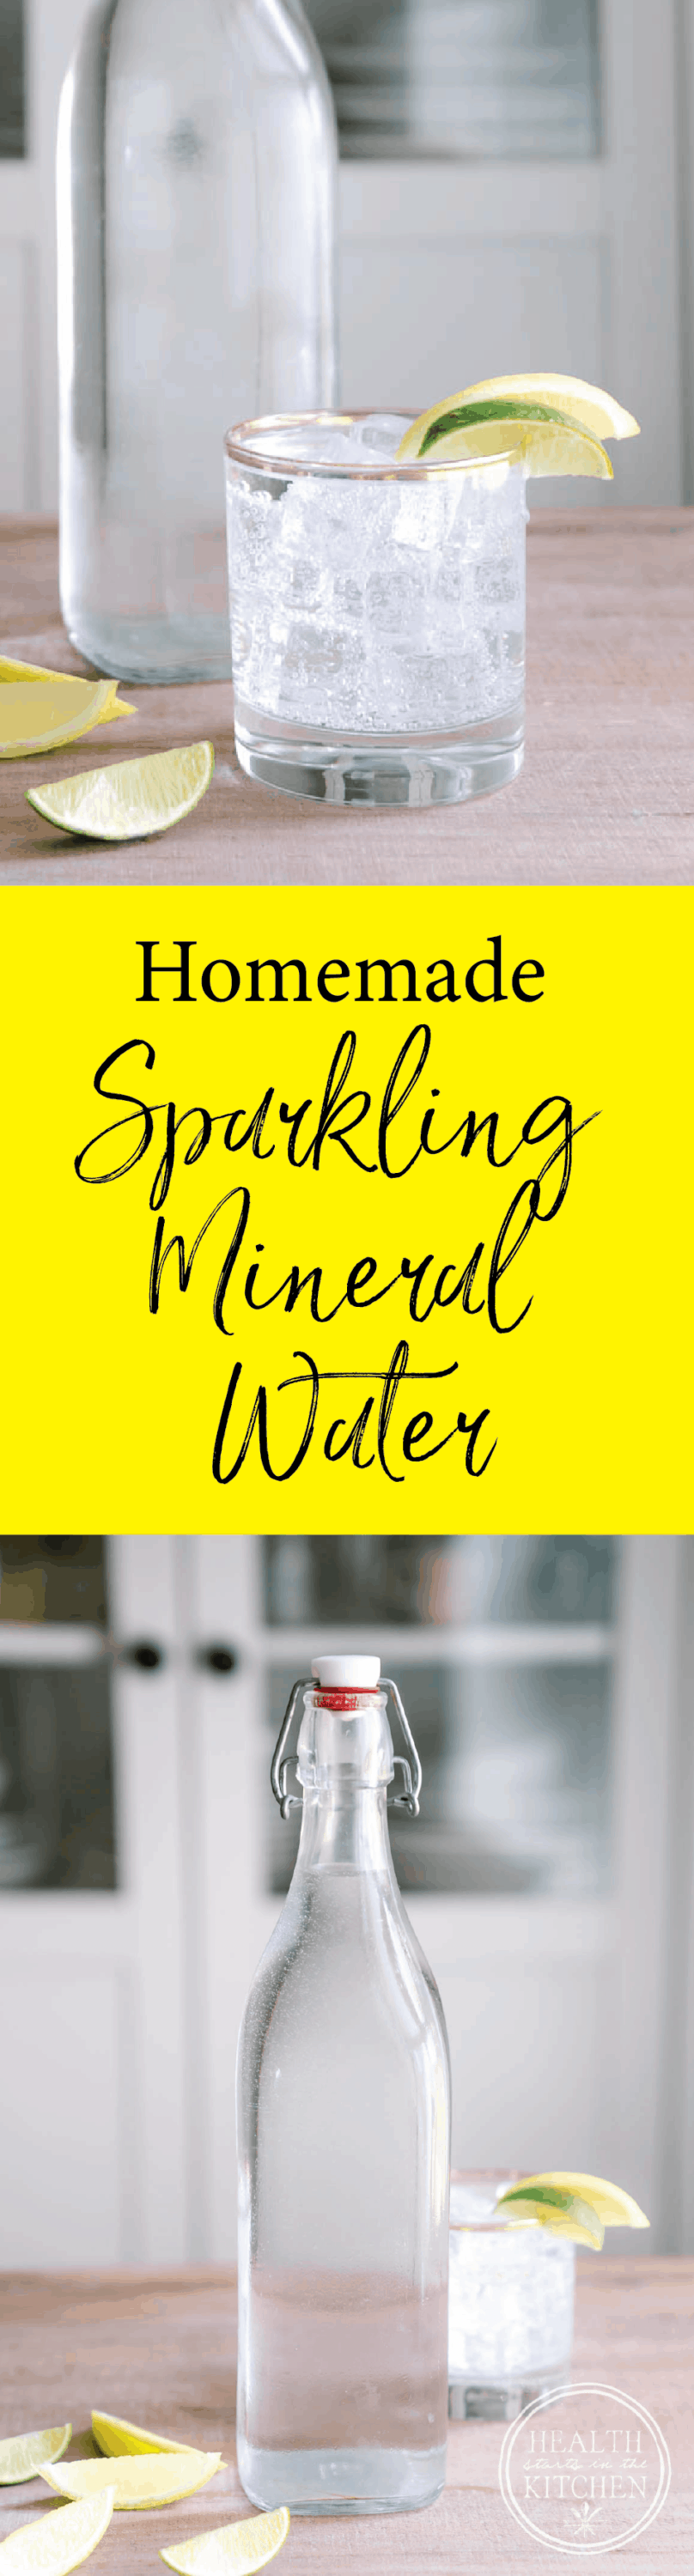 Homemade Sparkling Mineral Water